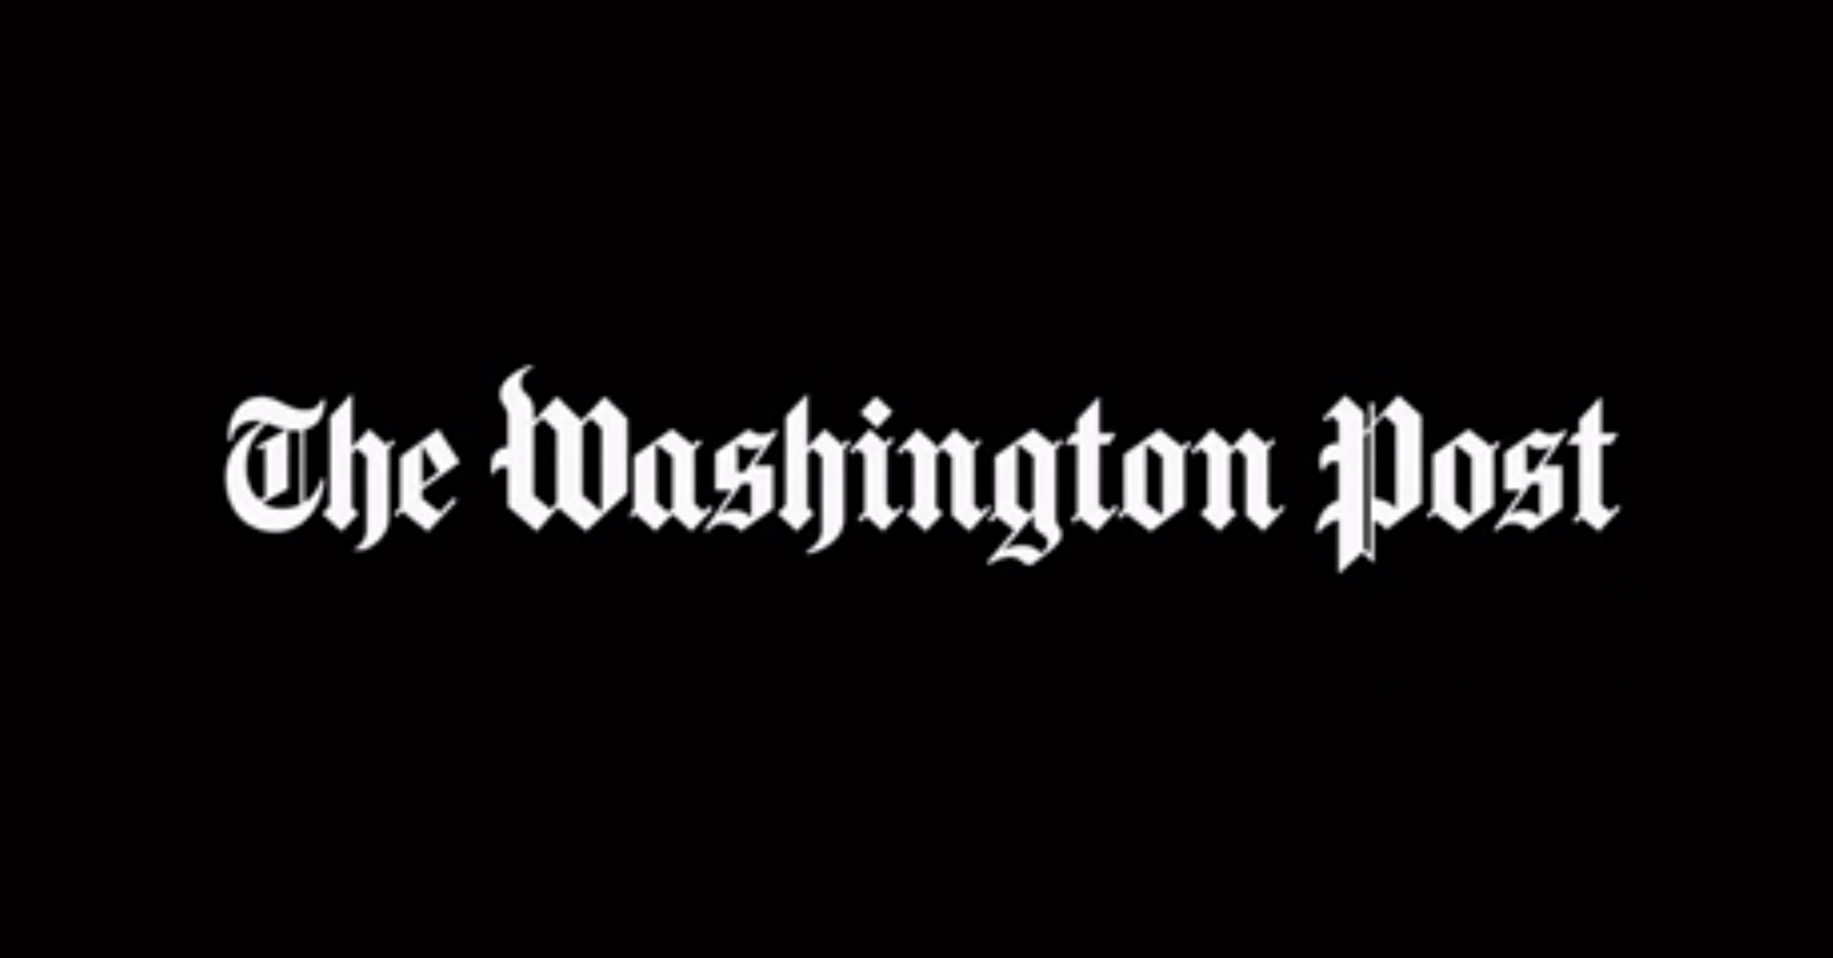 the washington post published a letter to the editor by the heritage foundations hans a von spakovsky that appears to directly violate the newspapers